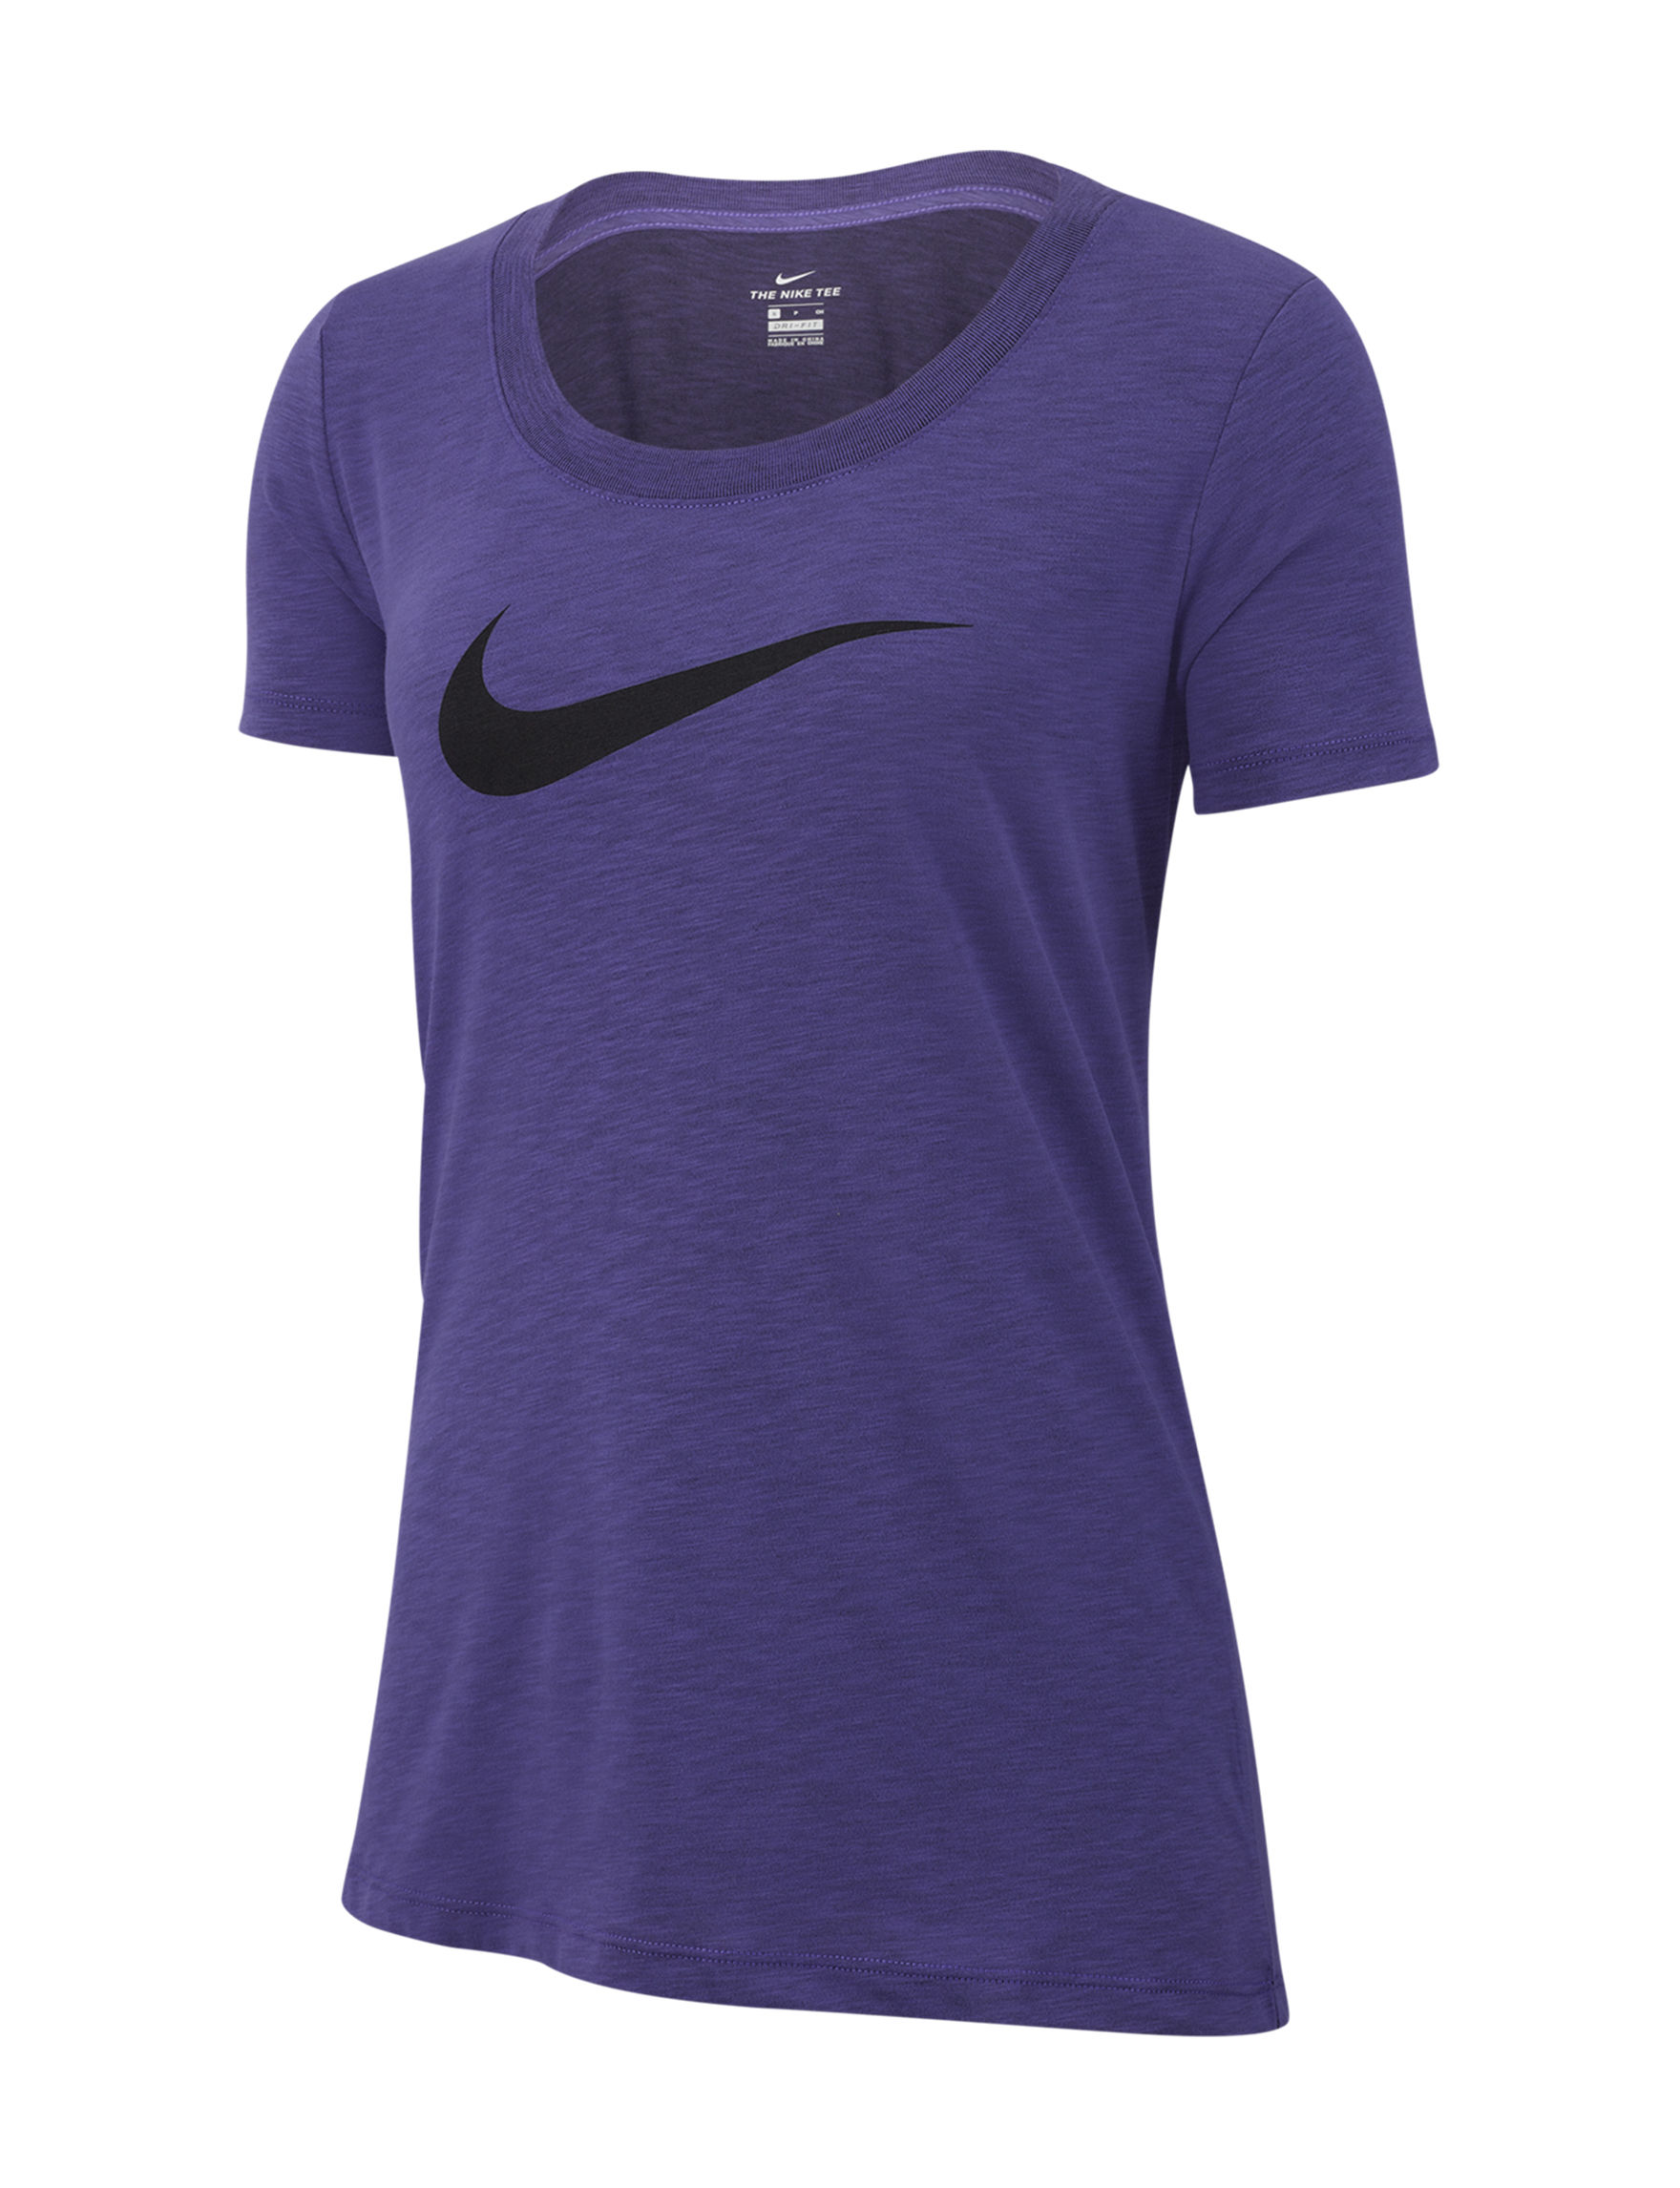 Nike Purple Tees & Tanks